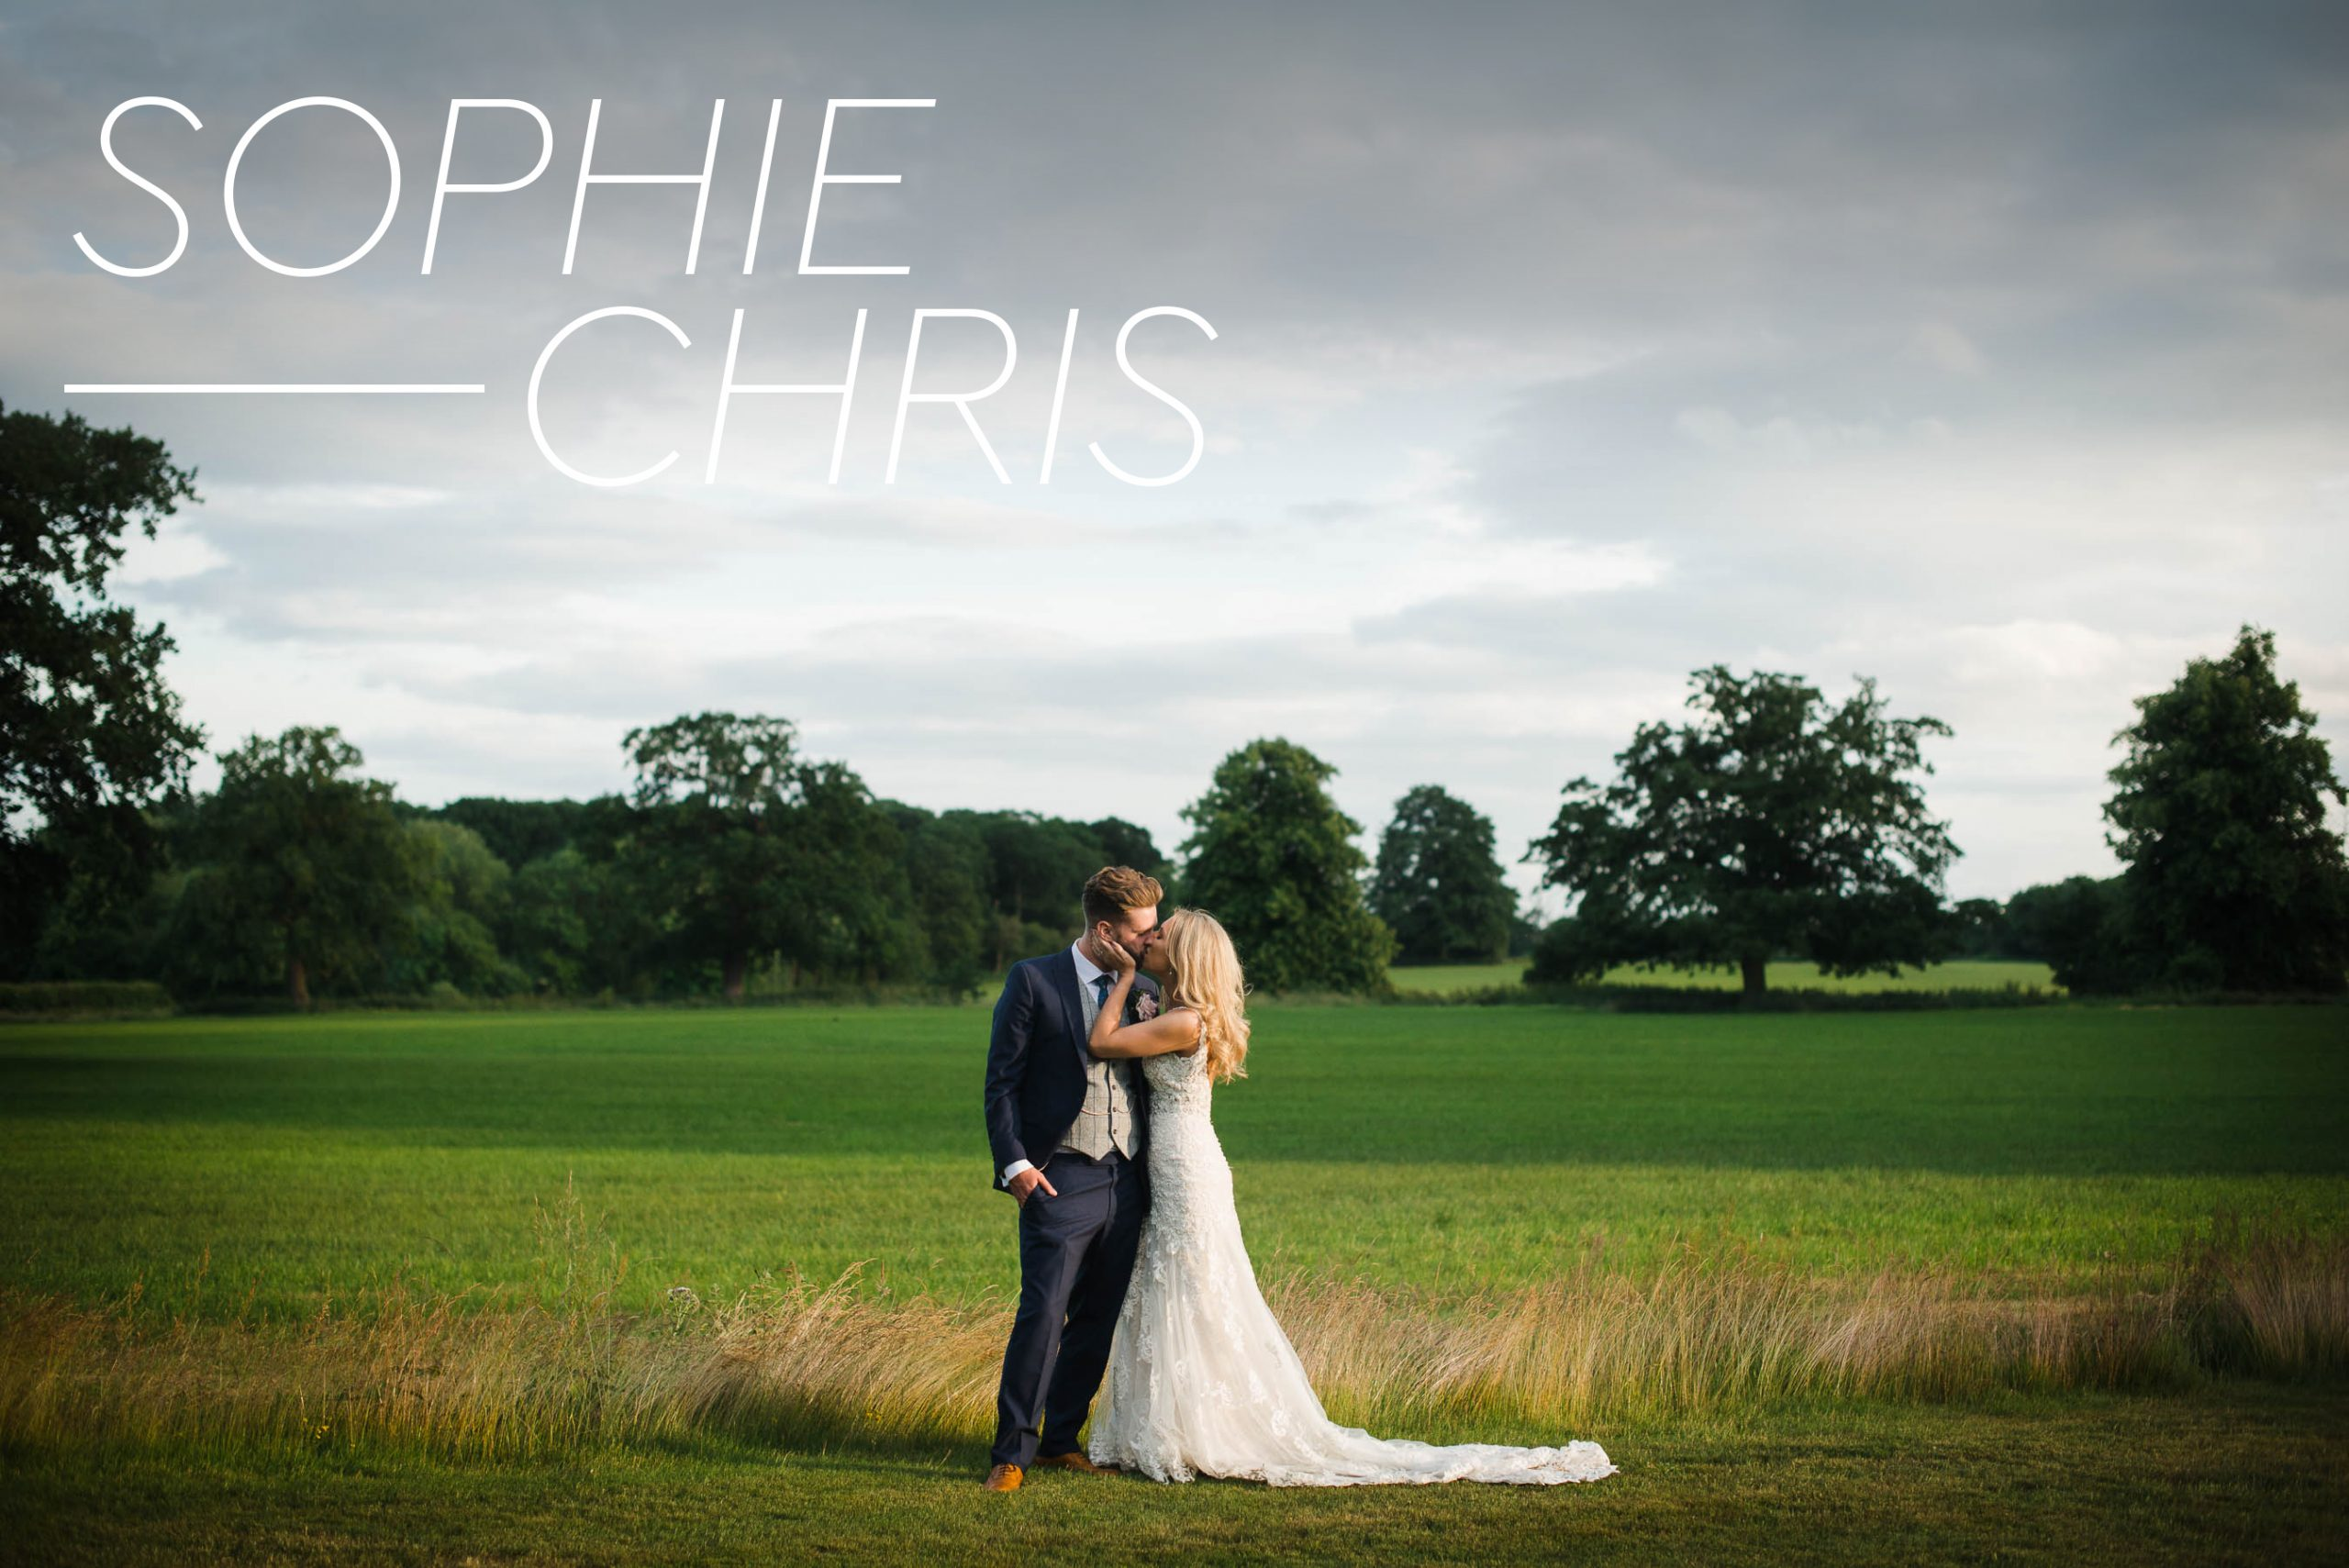 Sophie and Chris